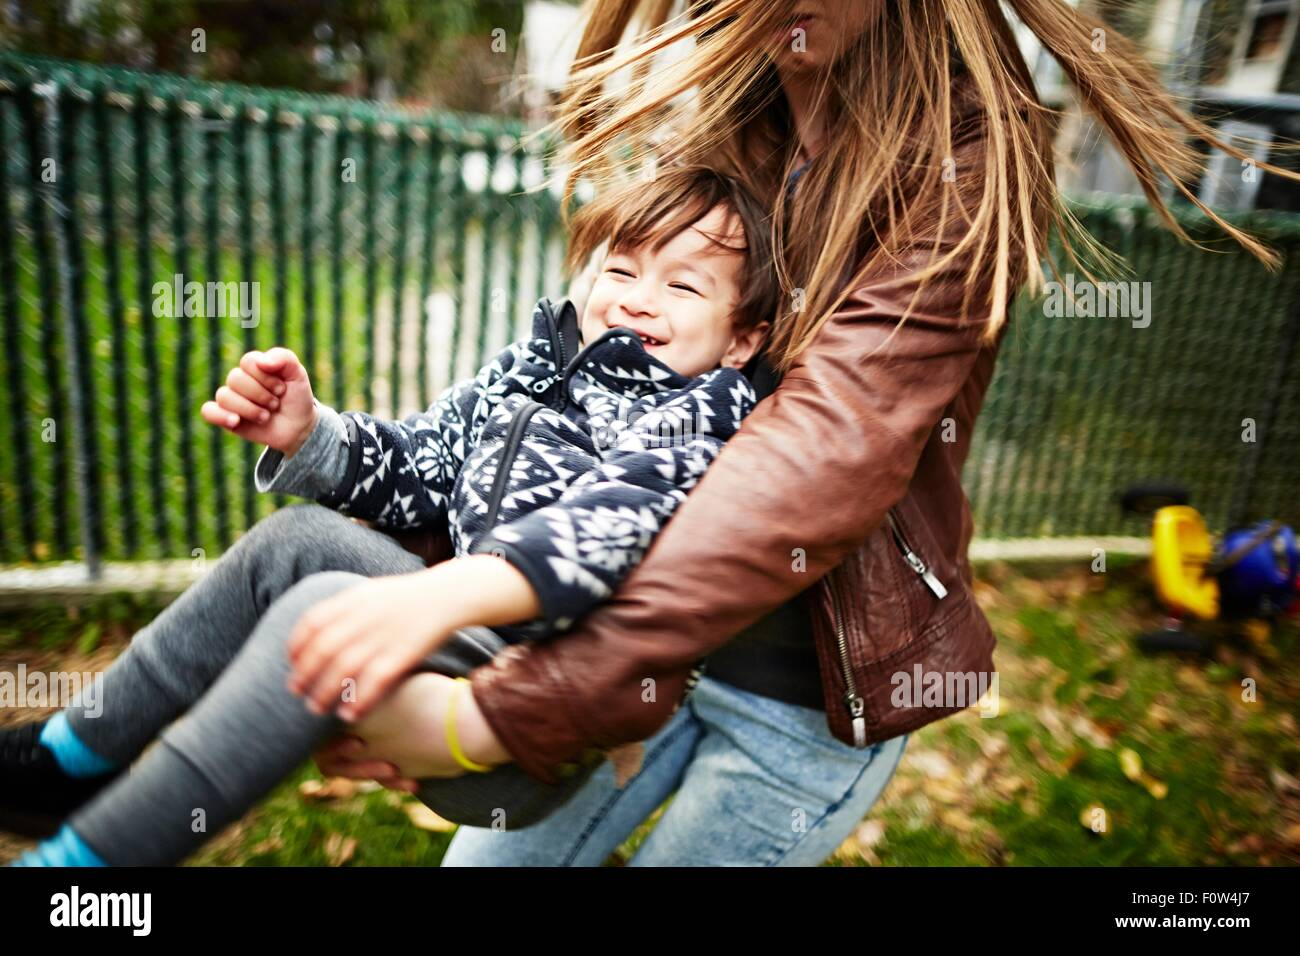 Mother playing with son in garden - Stock Image